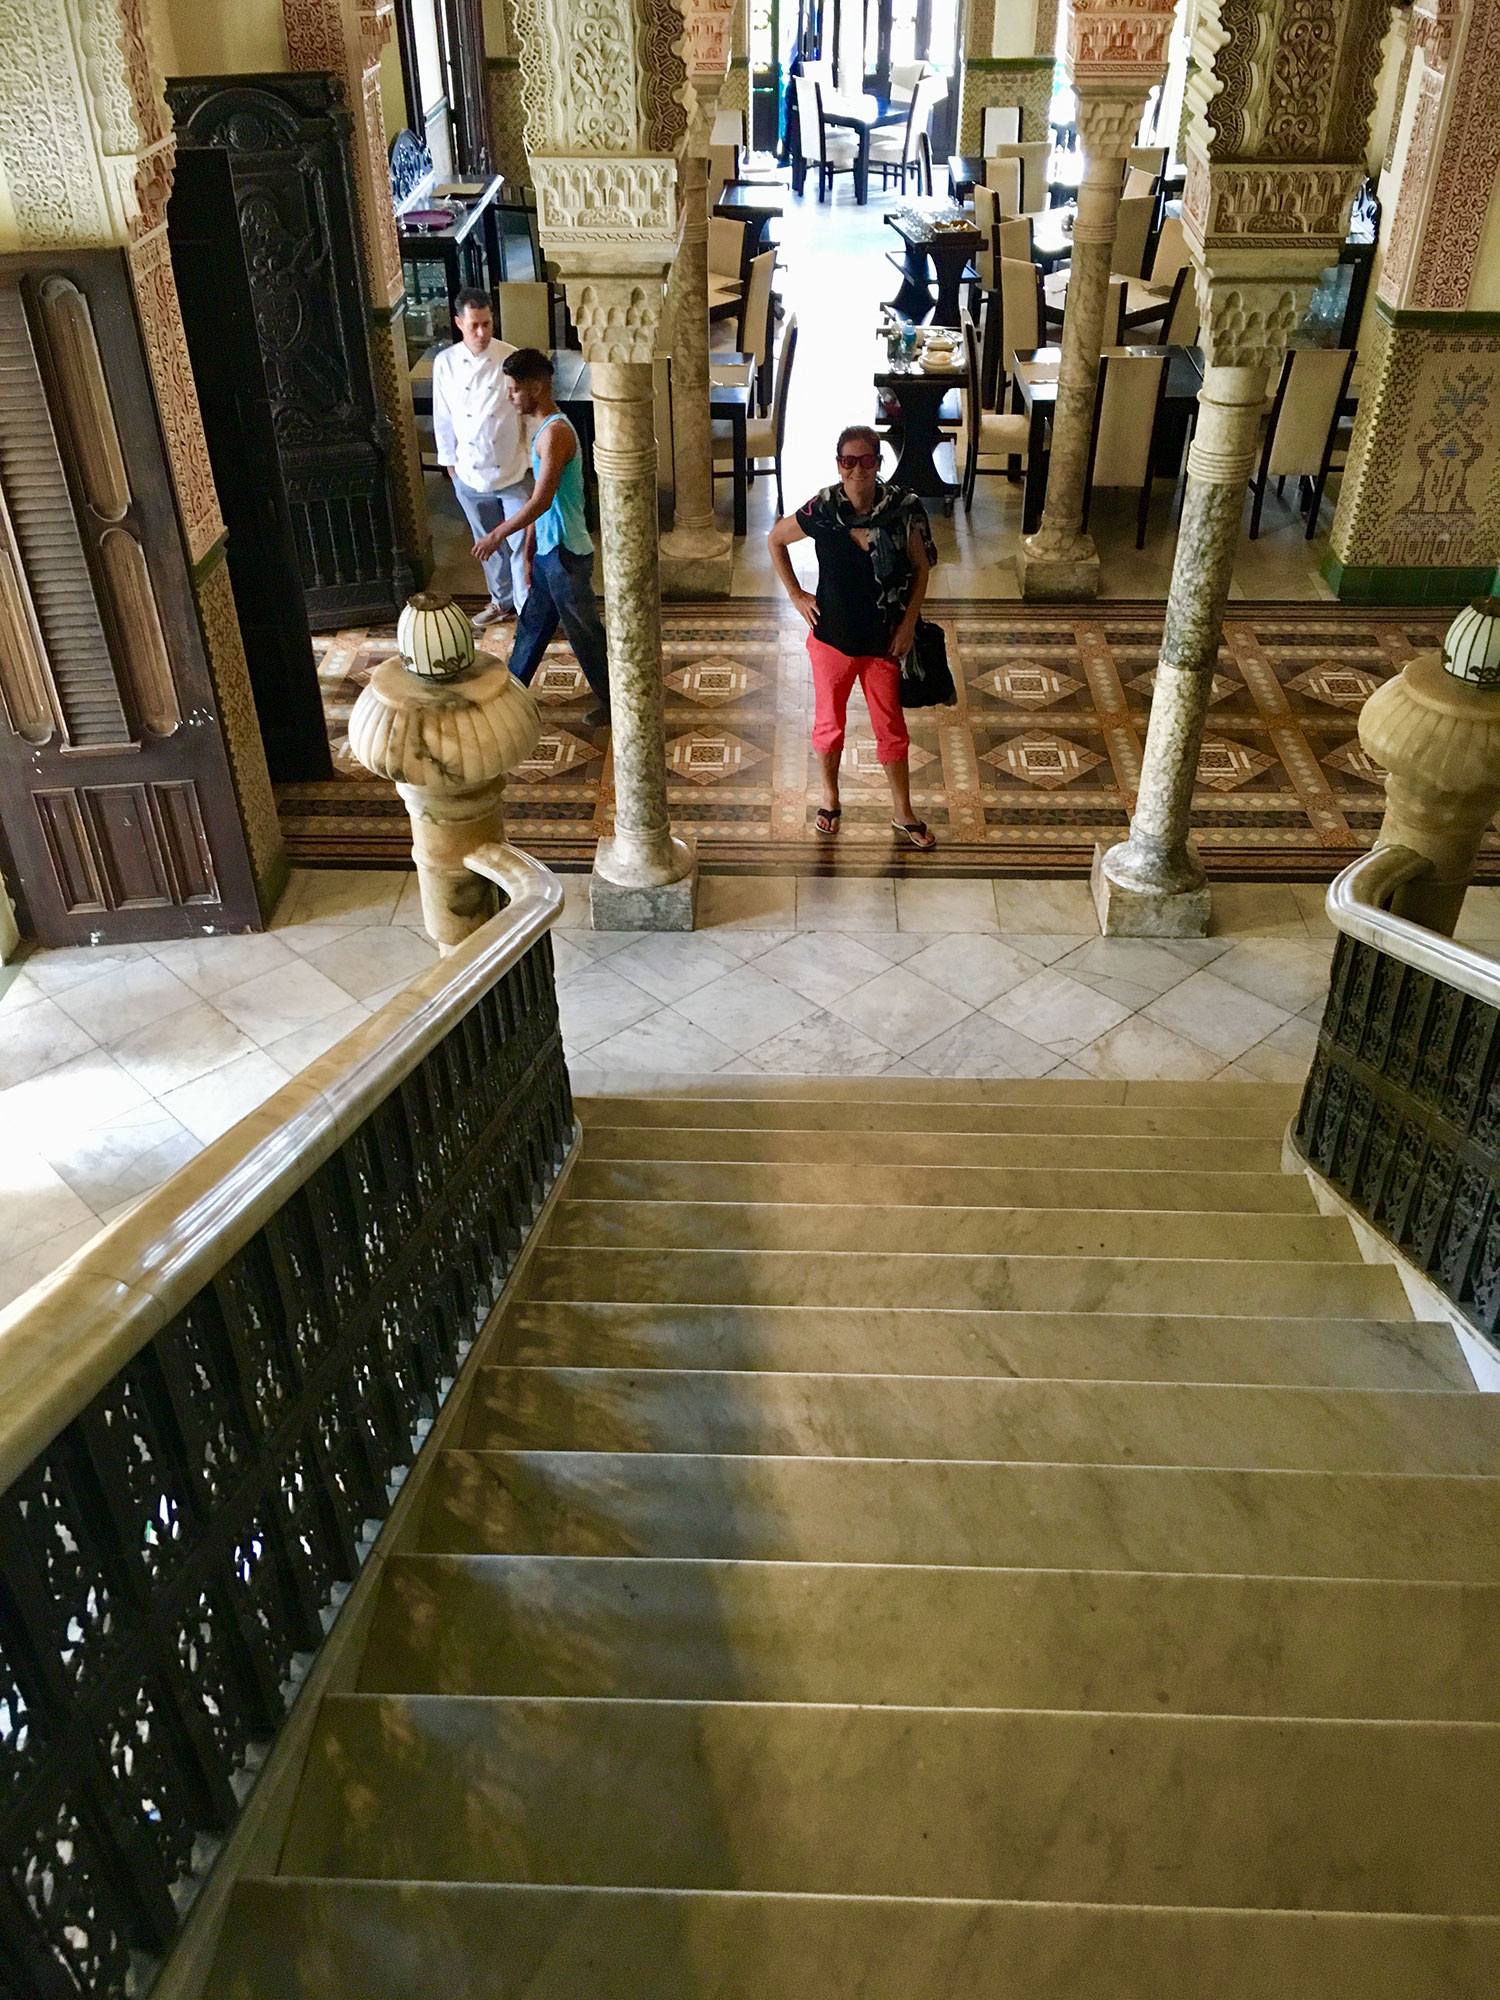 The main staircase of the house. The dining room is behind me.